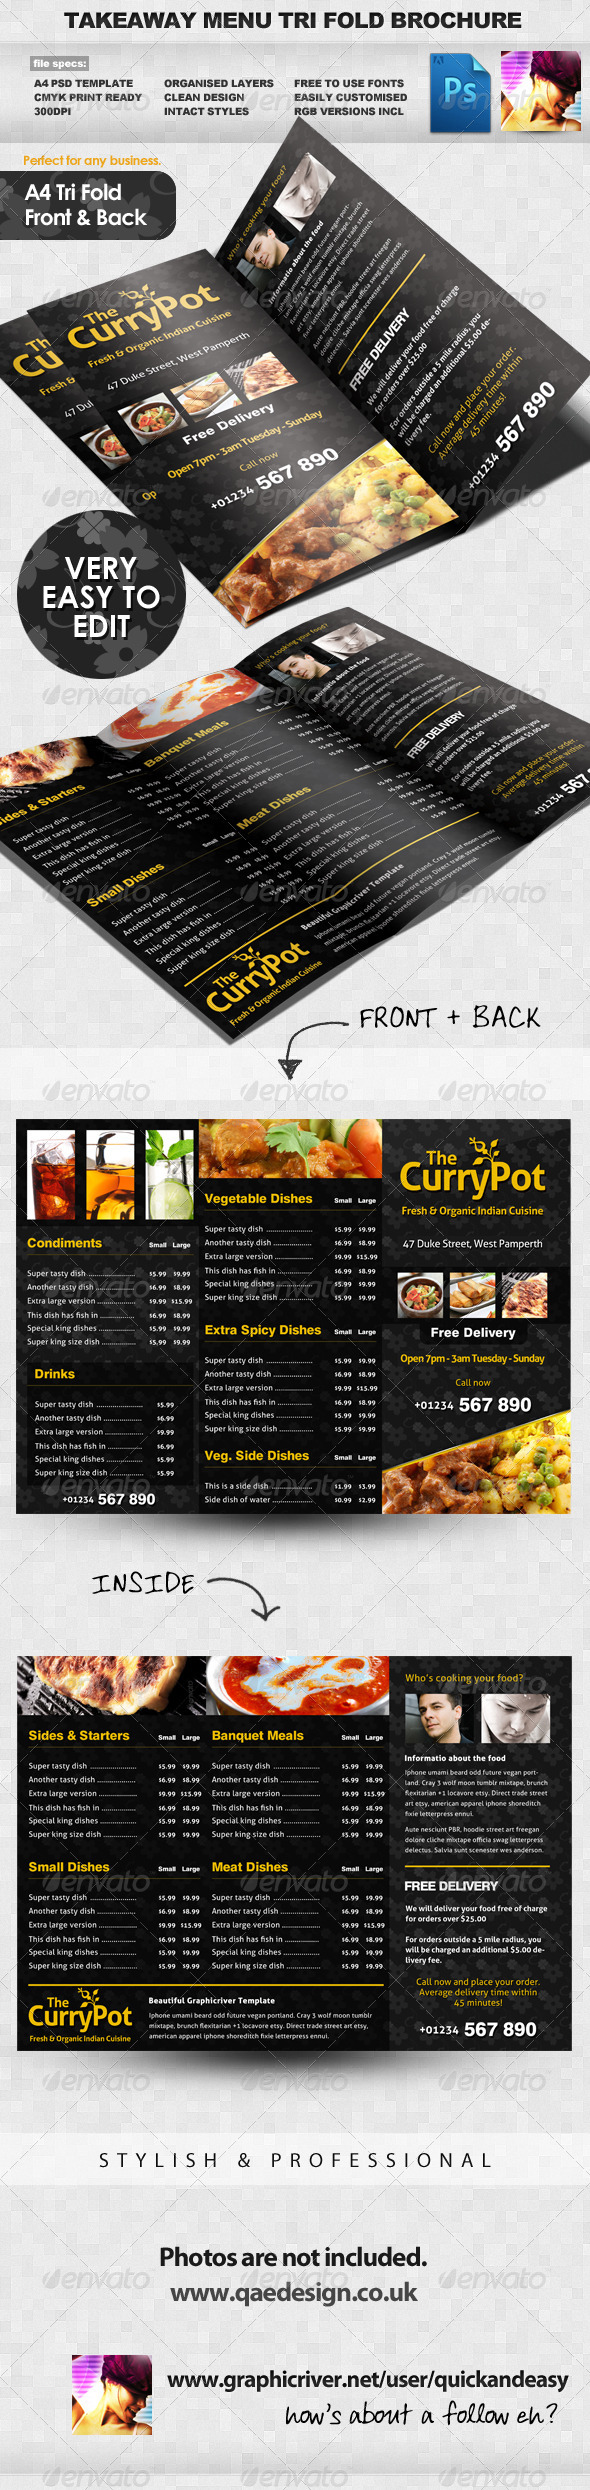 GraphicRiver Takeaway Food Menu Trifold Brochure Template 2288357